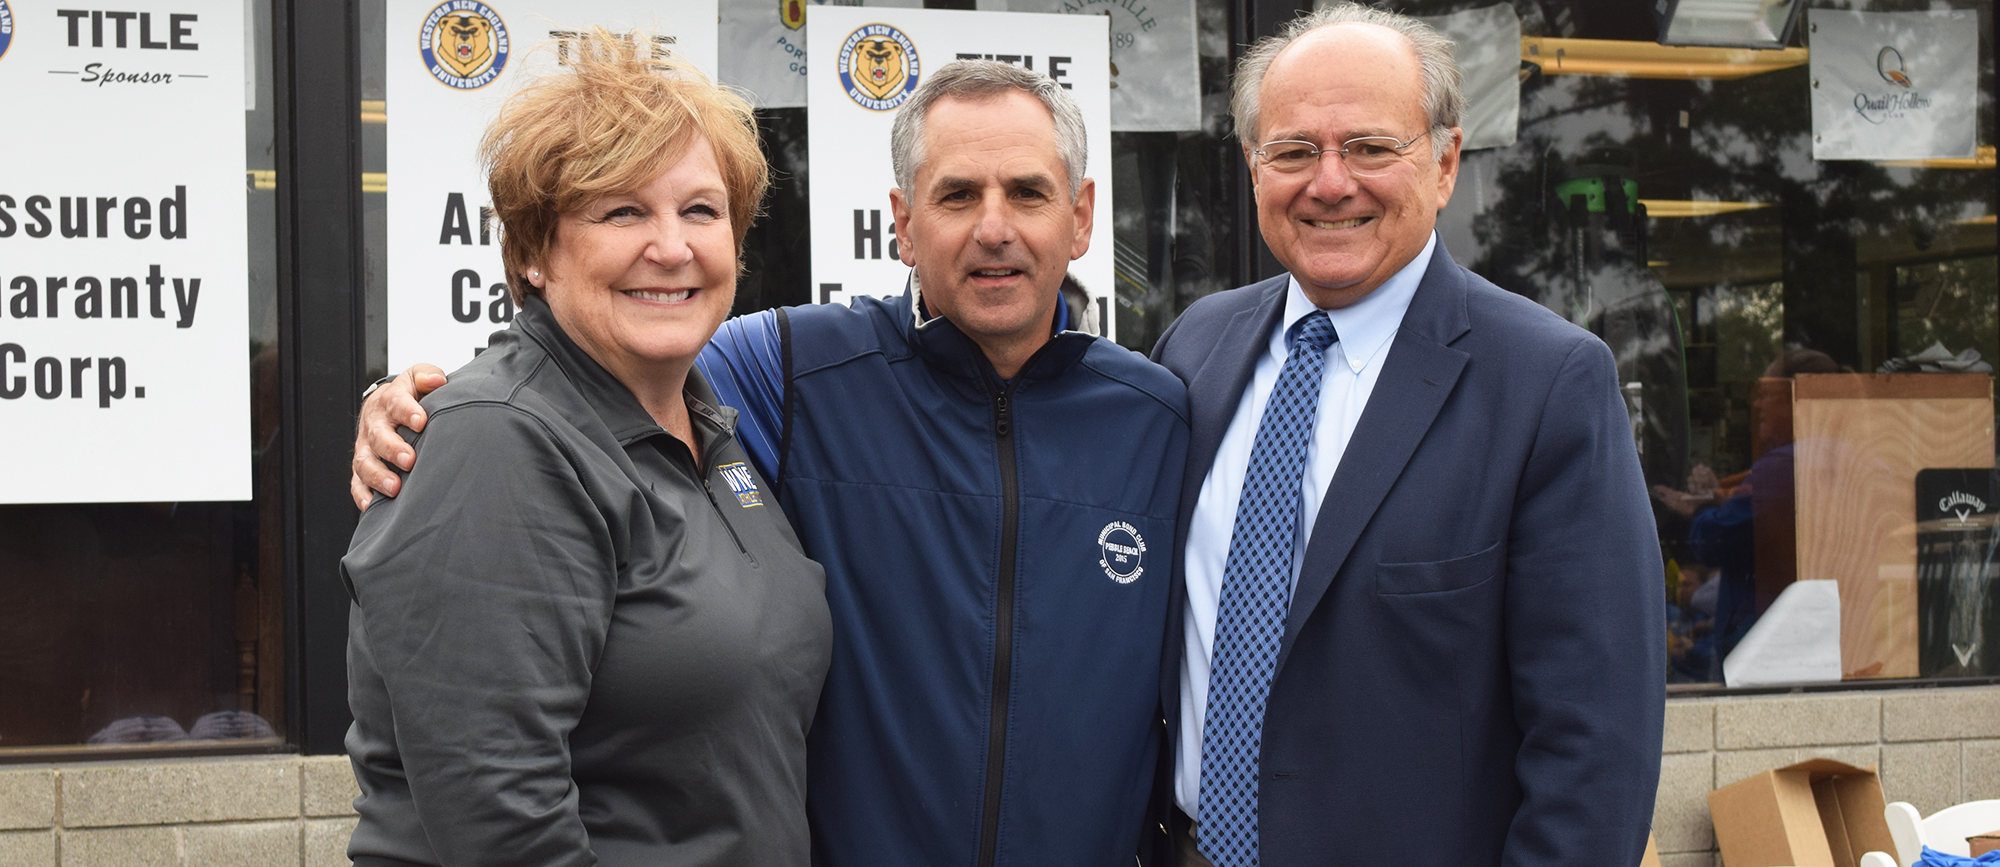 University trustee and former Golden Bear baseball player Richard Cassata '80 (middle) was recognized as the Guest of Honor on Monday at Western New England's 20th Annual Golf Classic. Cassata is pictured here along with Athletics Direct Report Dr. Sharianne Walker (left) and University President Dr. Anthony S. Caprio (right).